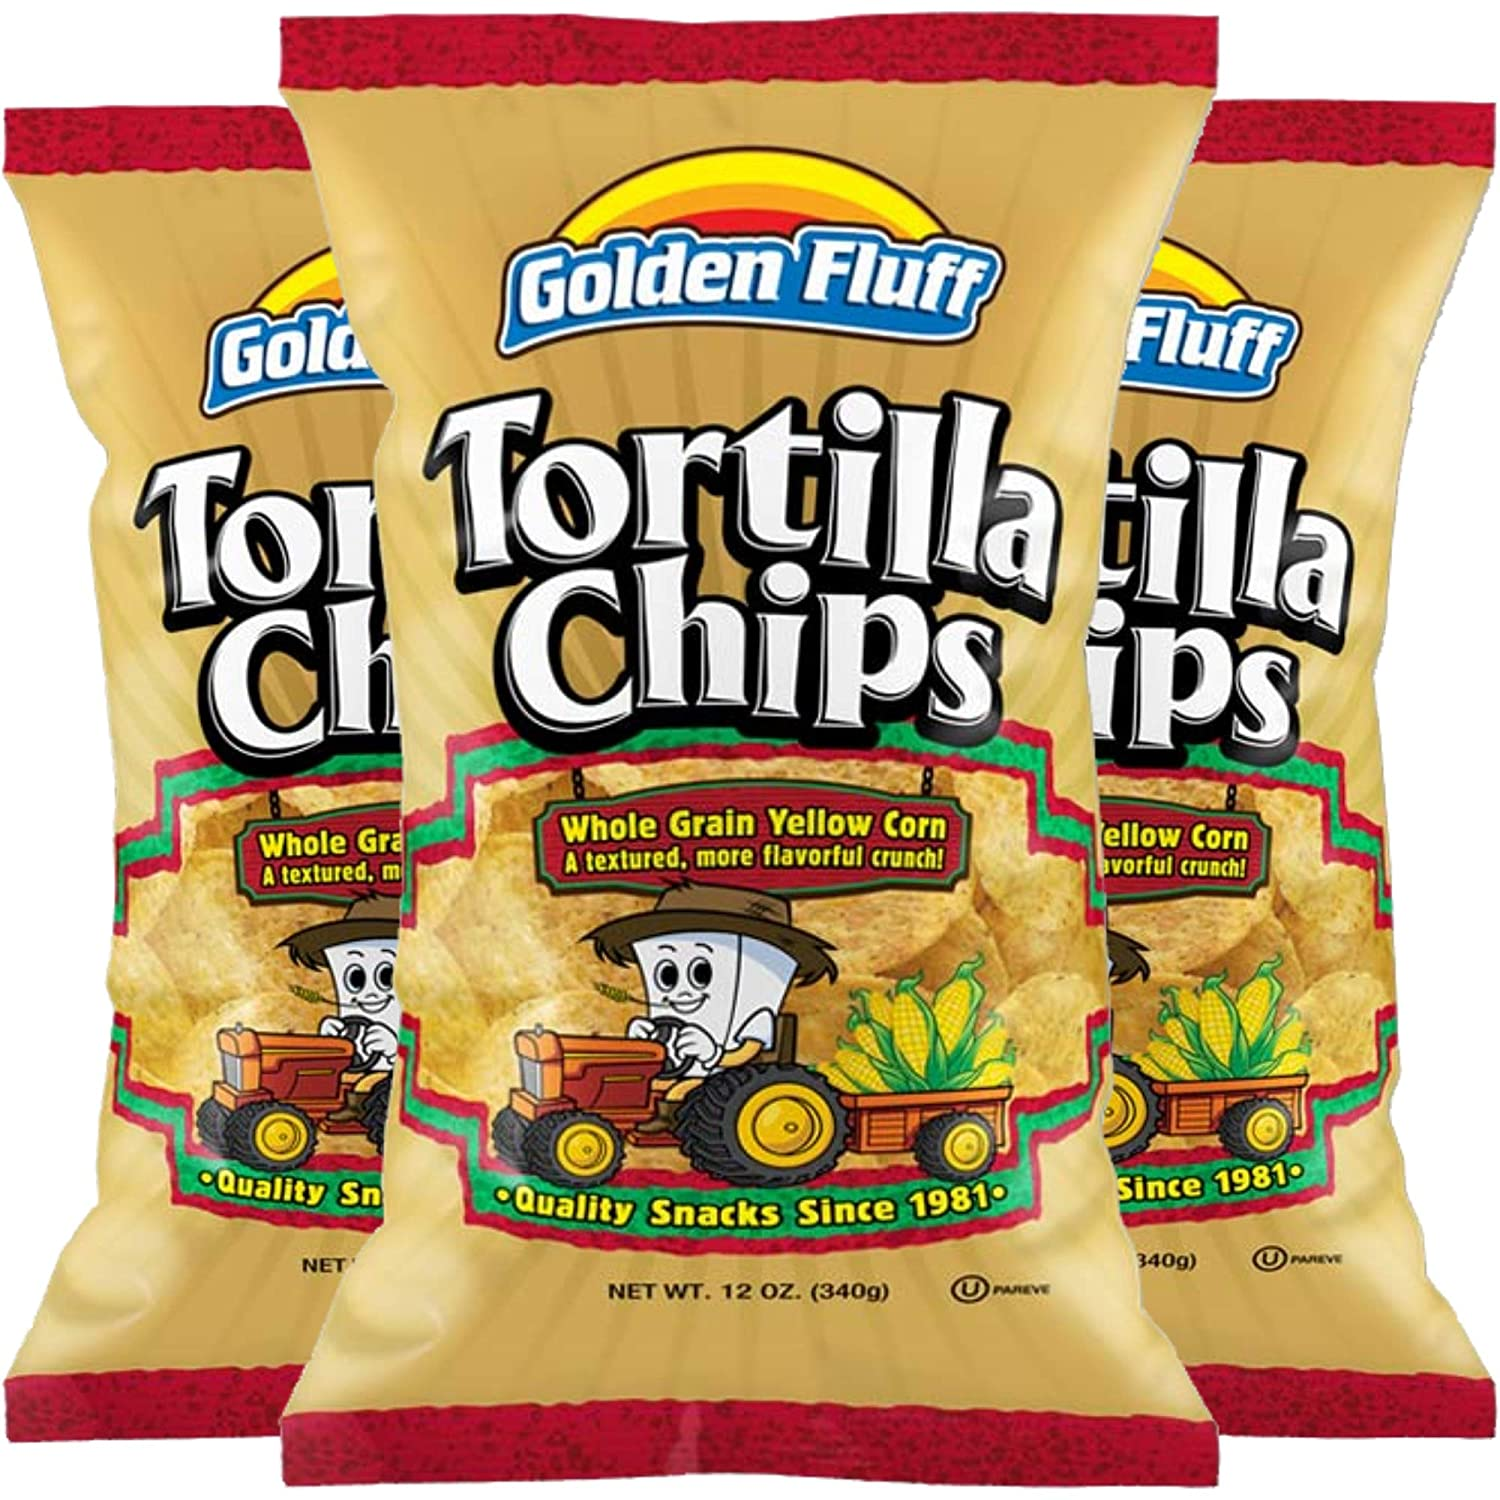 Tortilla Chips All Natural Gluten Free Be super welcome Corn Max 84% OFF No